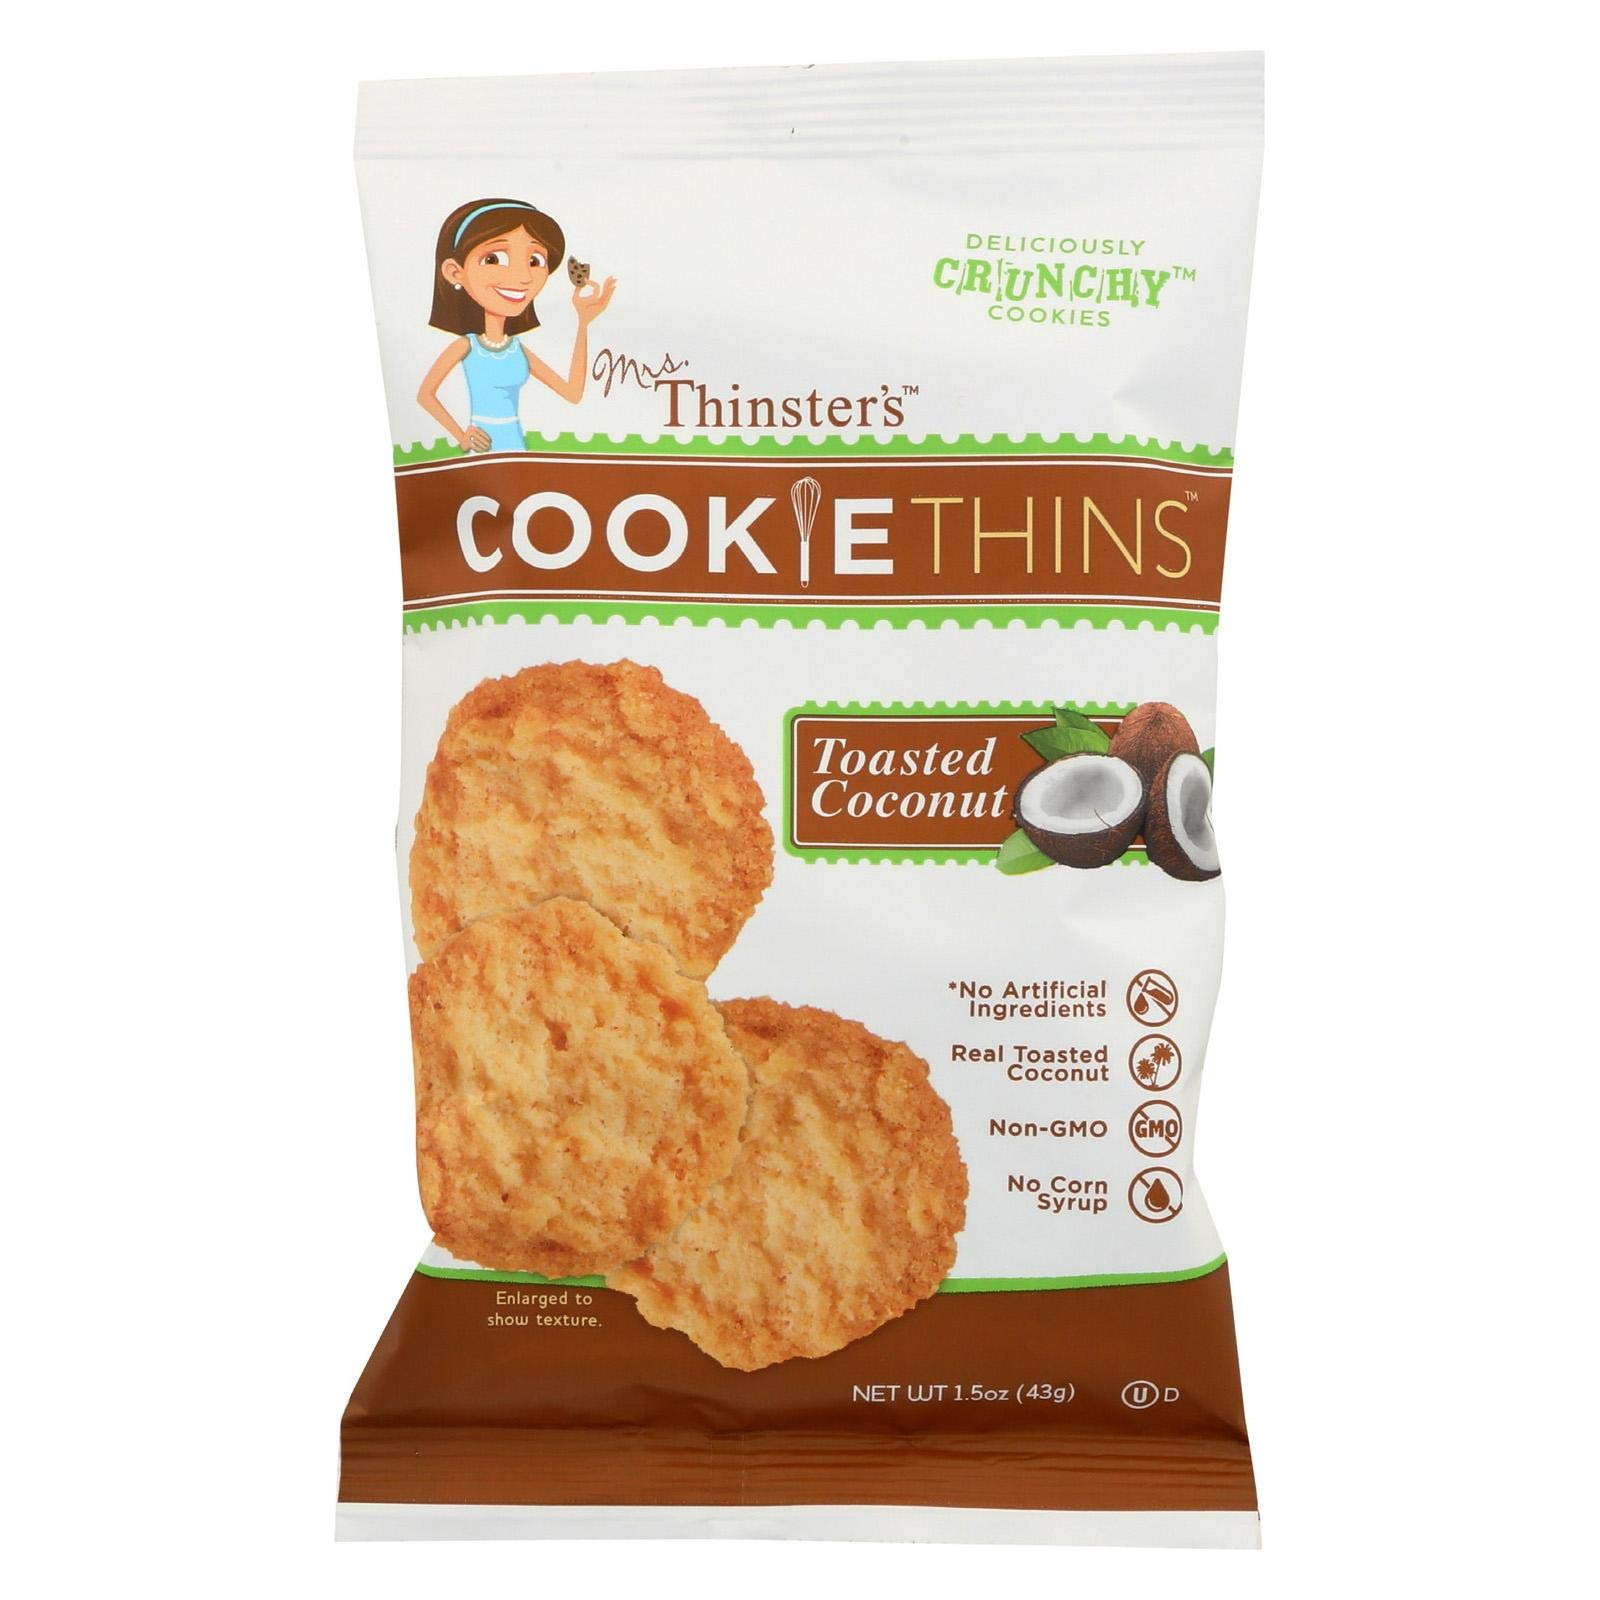 MRS. THINSTER'S, Ckie Thin, Toasted Coconut, Pack of 8, Size 1.5 OZ, (No Artificial Ingredients)